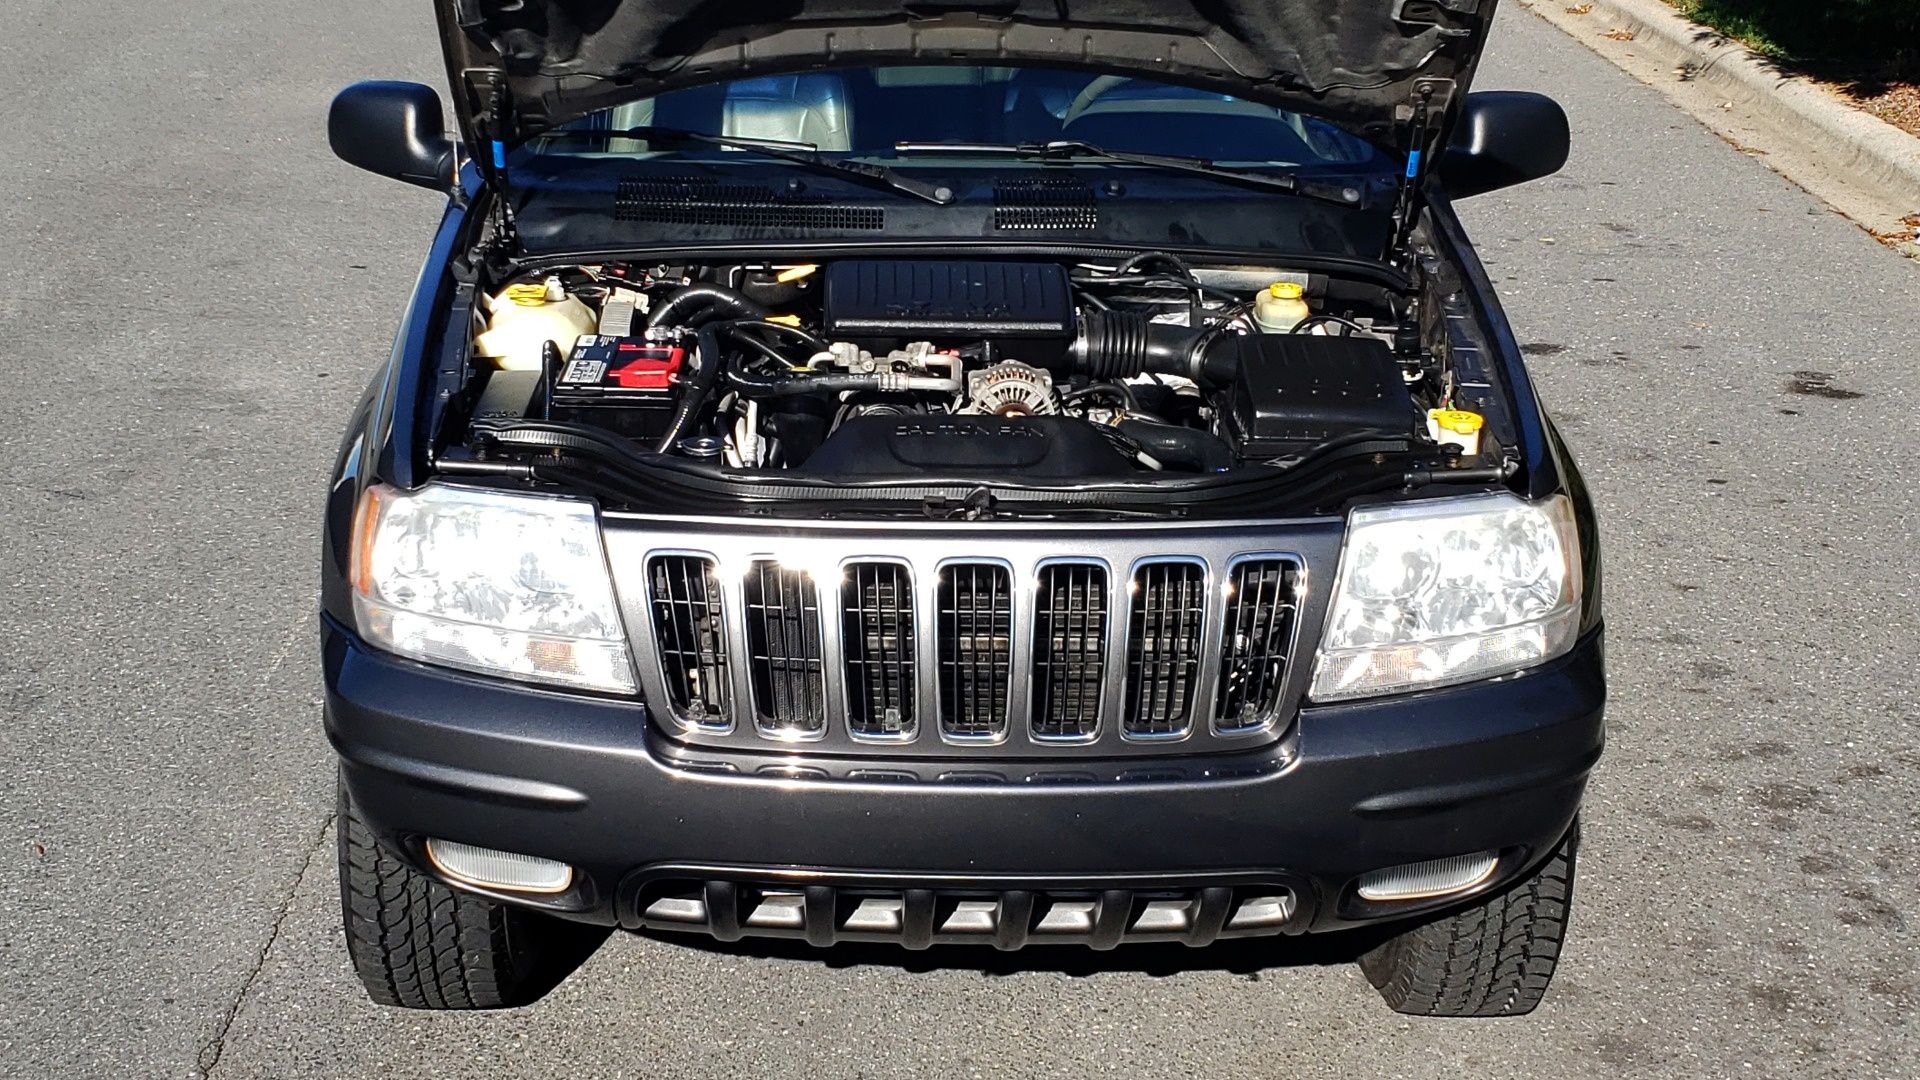 Used 2002 Jeep GRAND CHEROKEE LIMITED 4X4 / SUNROOF / 4.7L V8 / 5-SPD AUTO / CLD WTHR for sale Sold at Formula Imports in Charlotte NC 28227 10